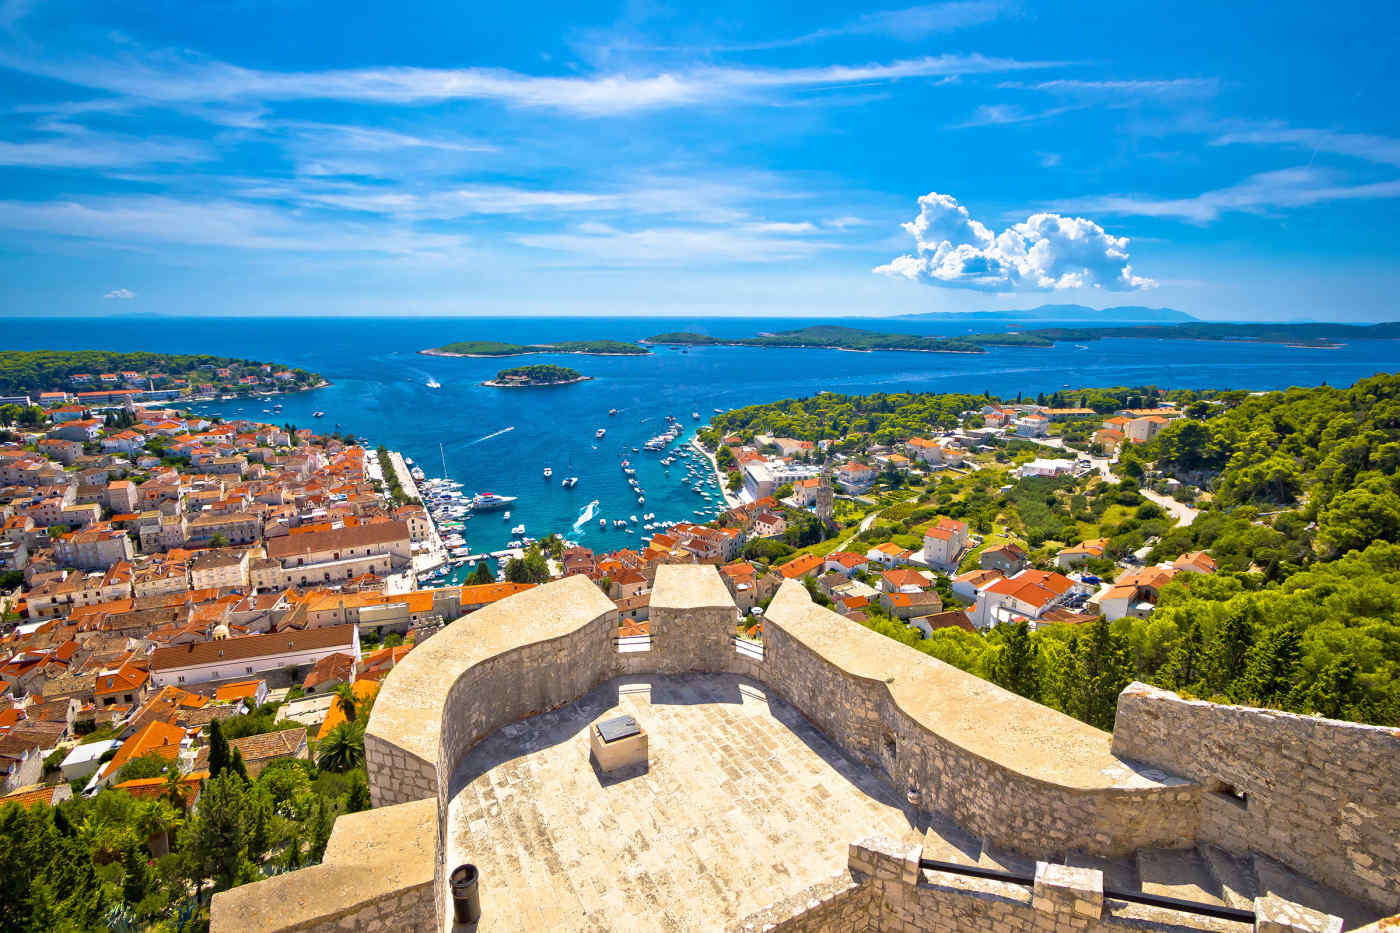 View of Hvar from Fortica